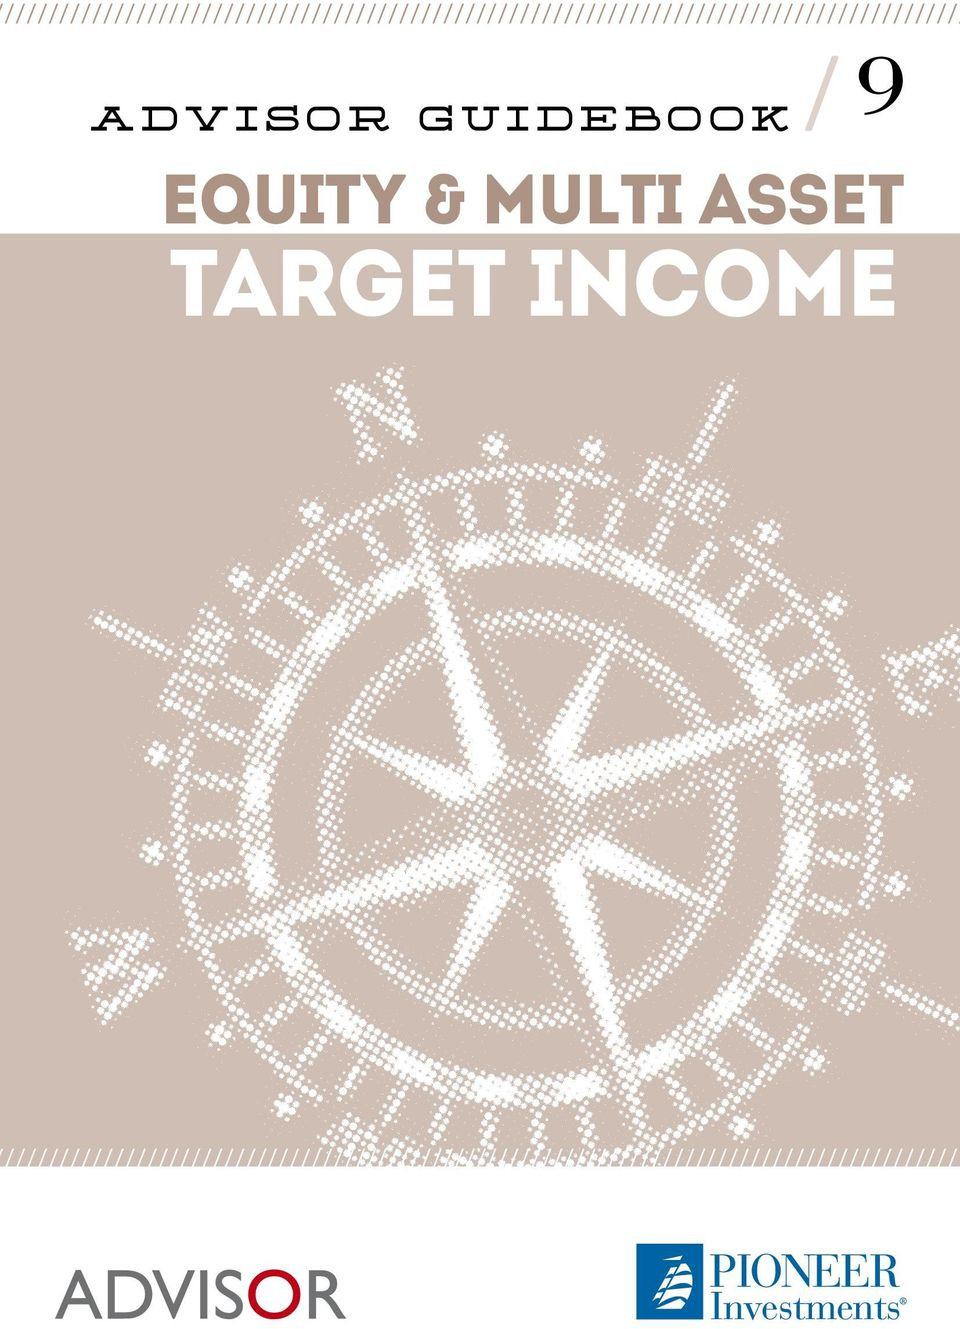 equity & multi asset